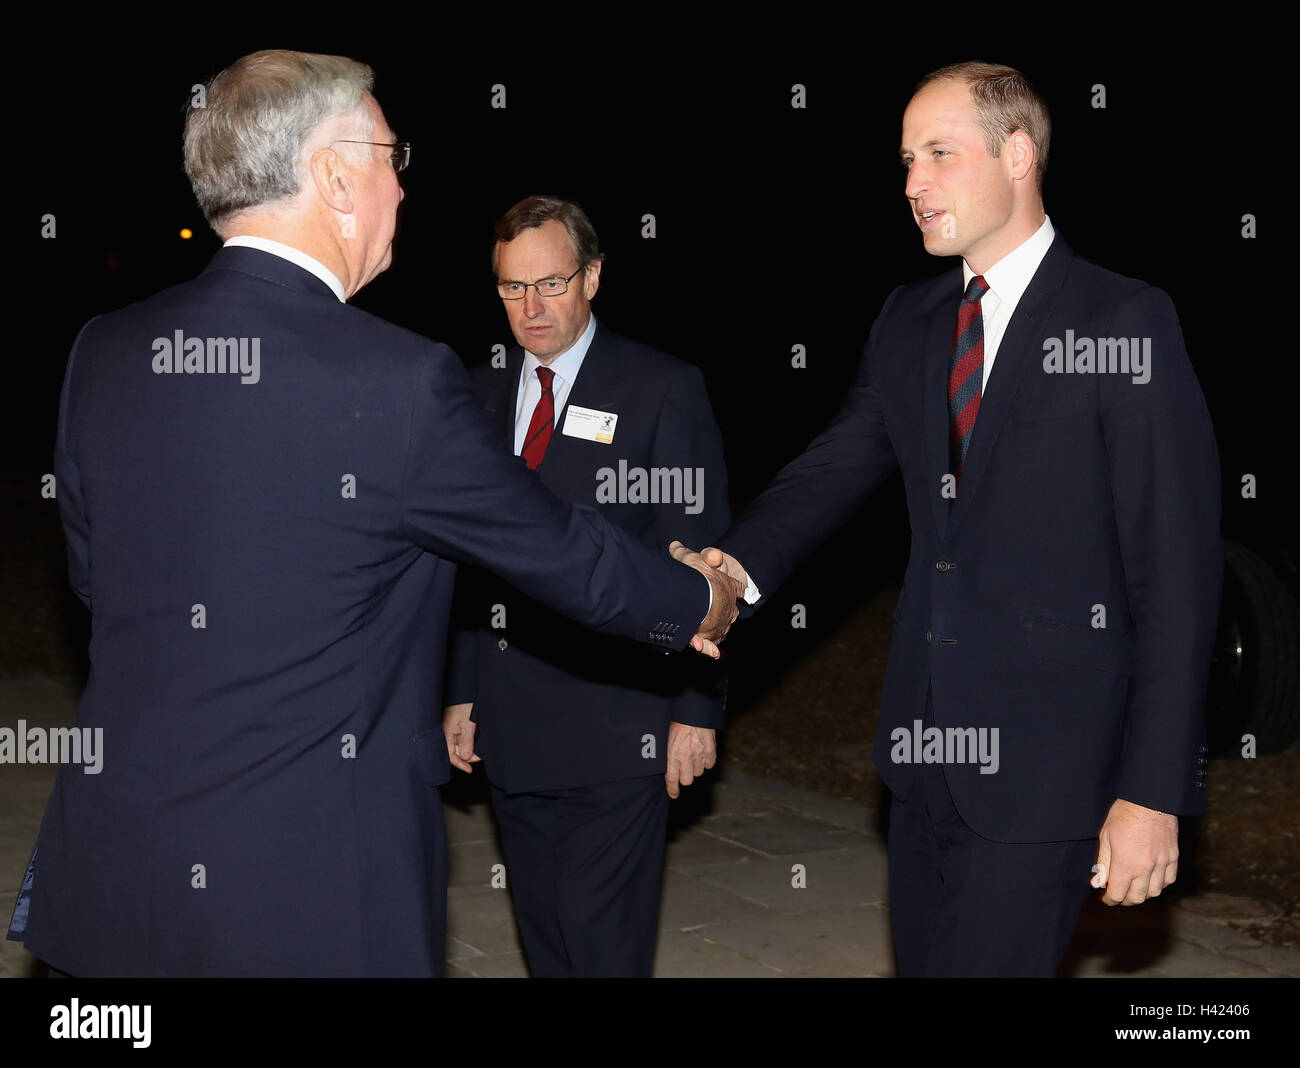 The Duke of Cambridge greets Defence Secretary Sir Michael Fallon as they attend the MOD Employer Recognition Scheme - Stock Image